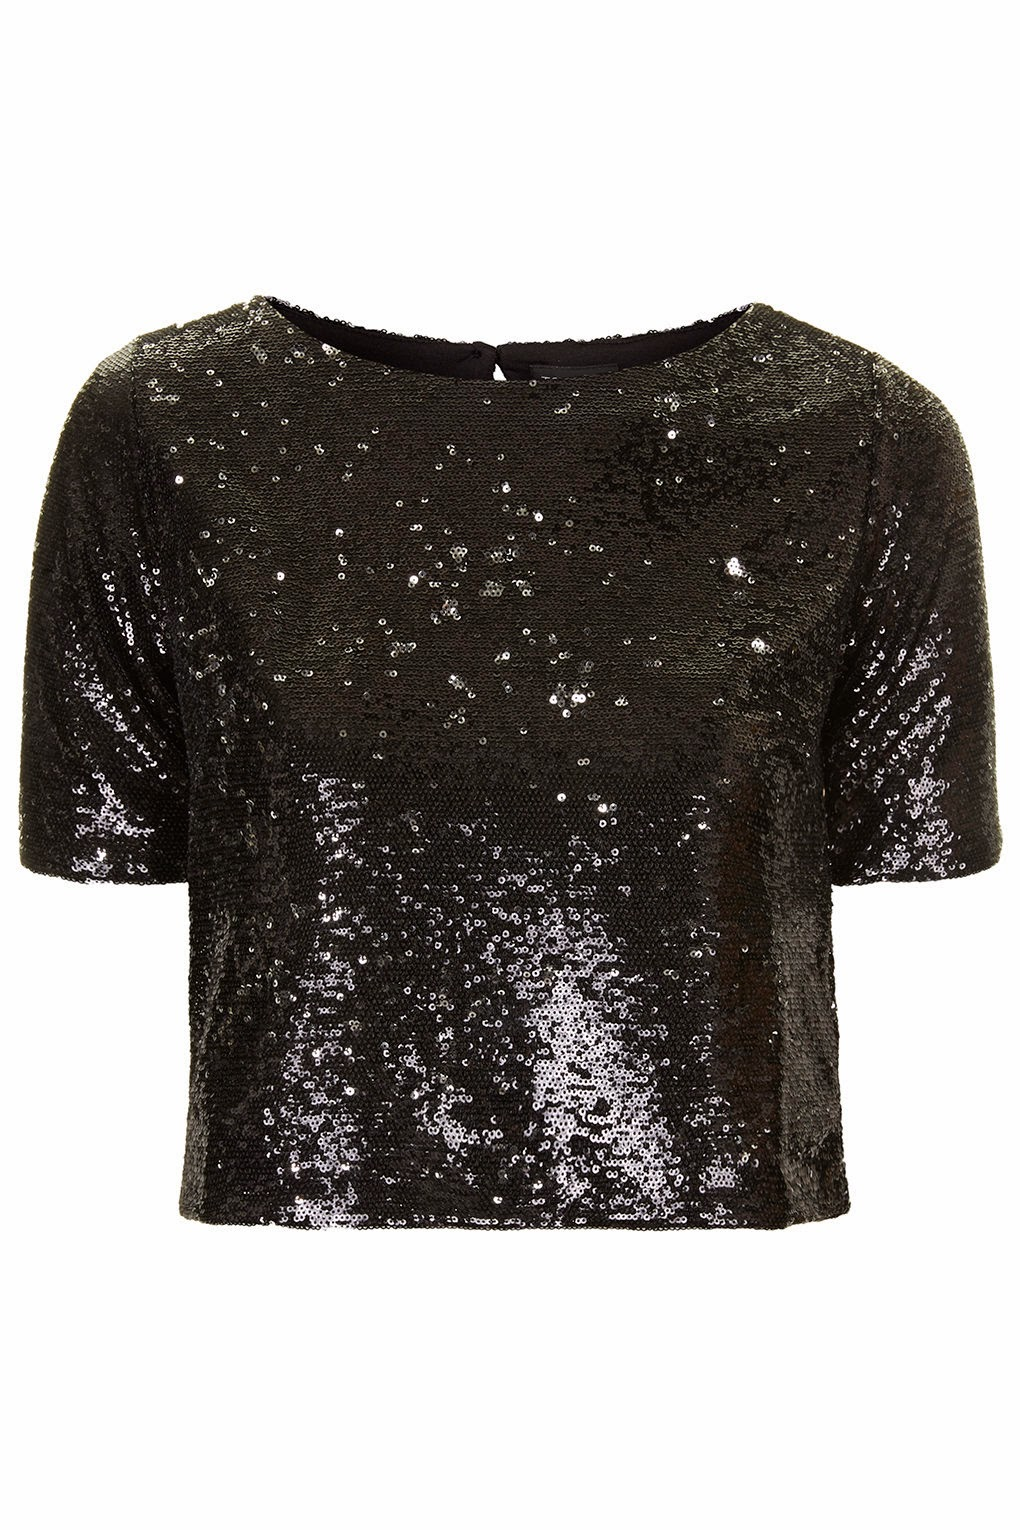 cropped black sequin top